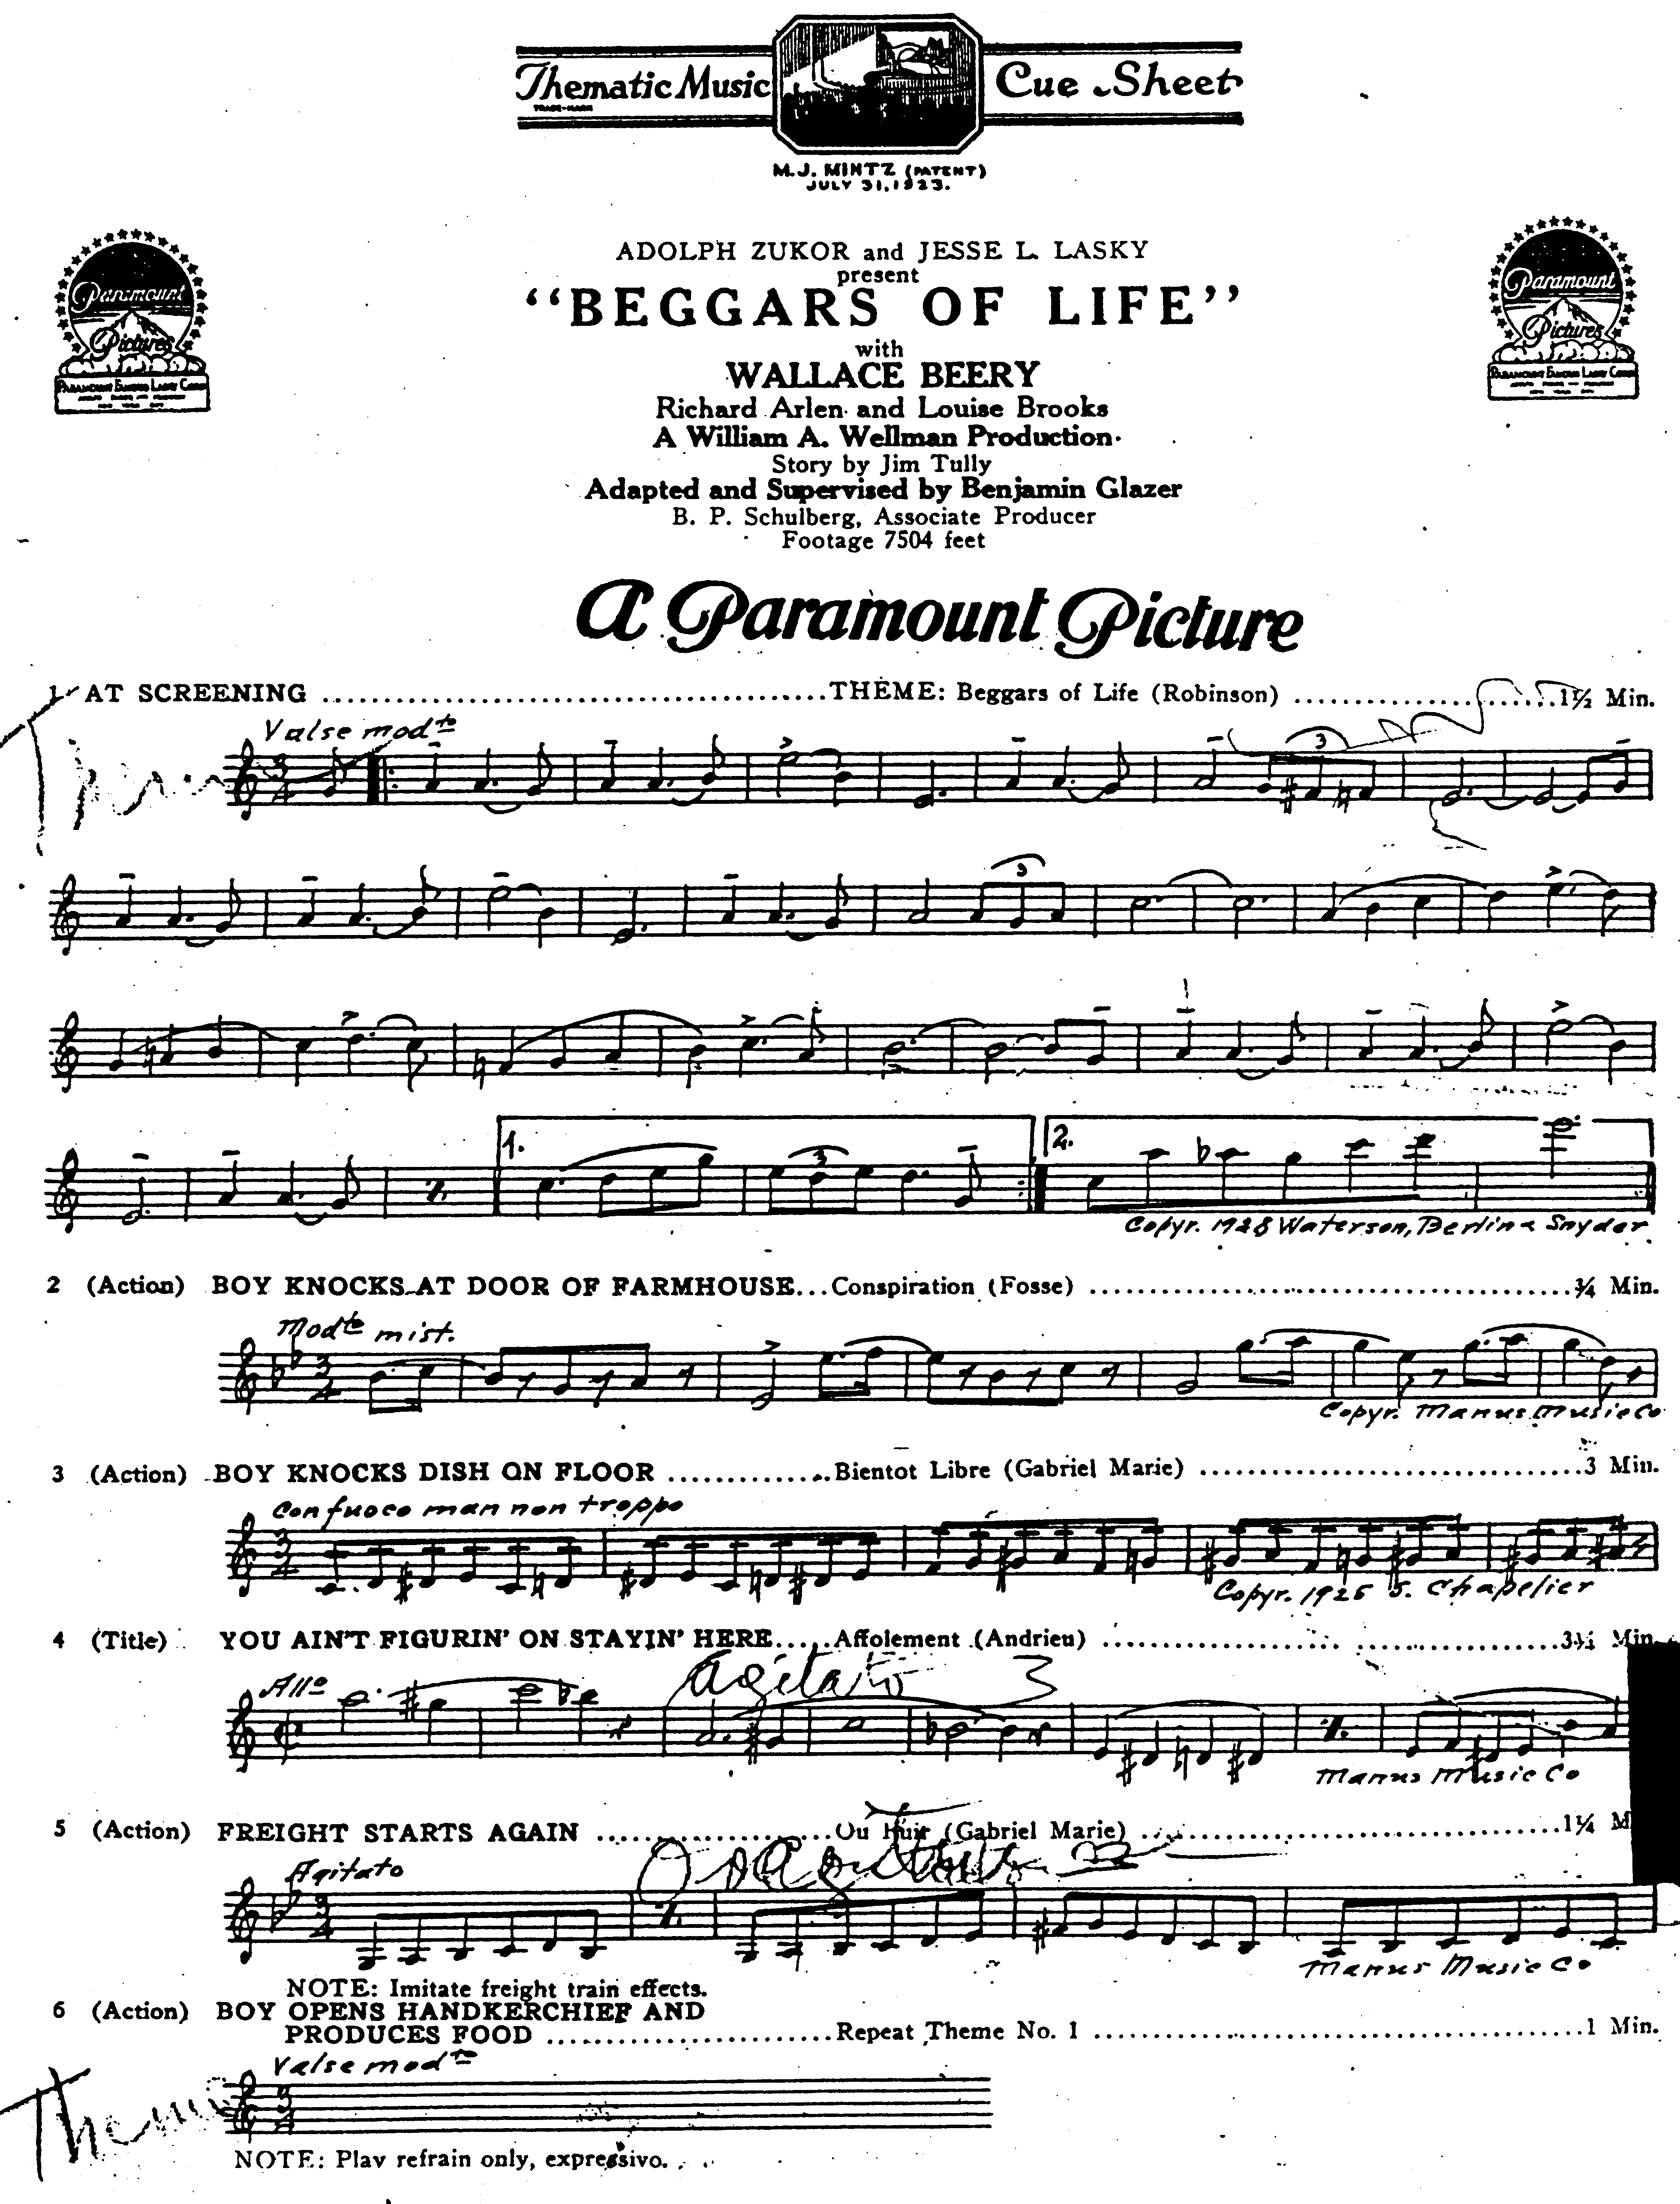 Beggars of Life Cue Sheet